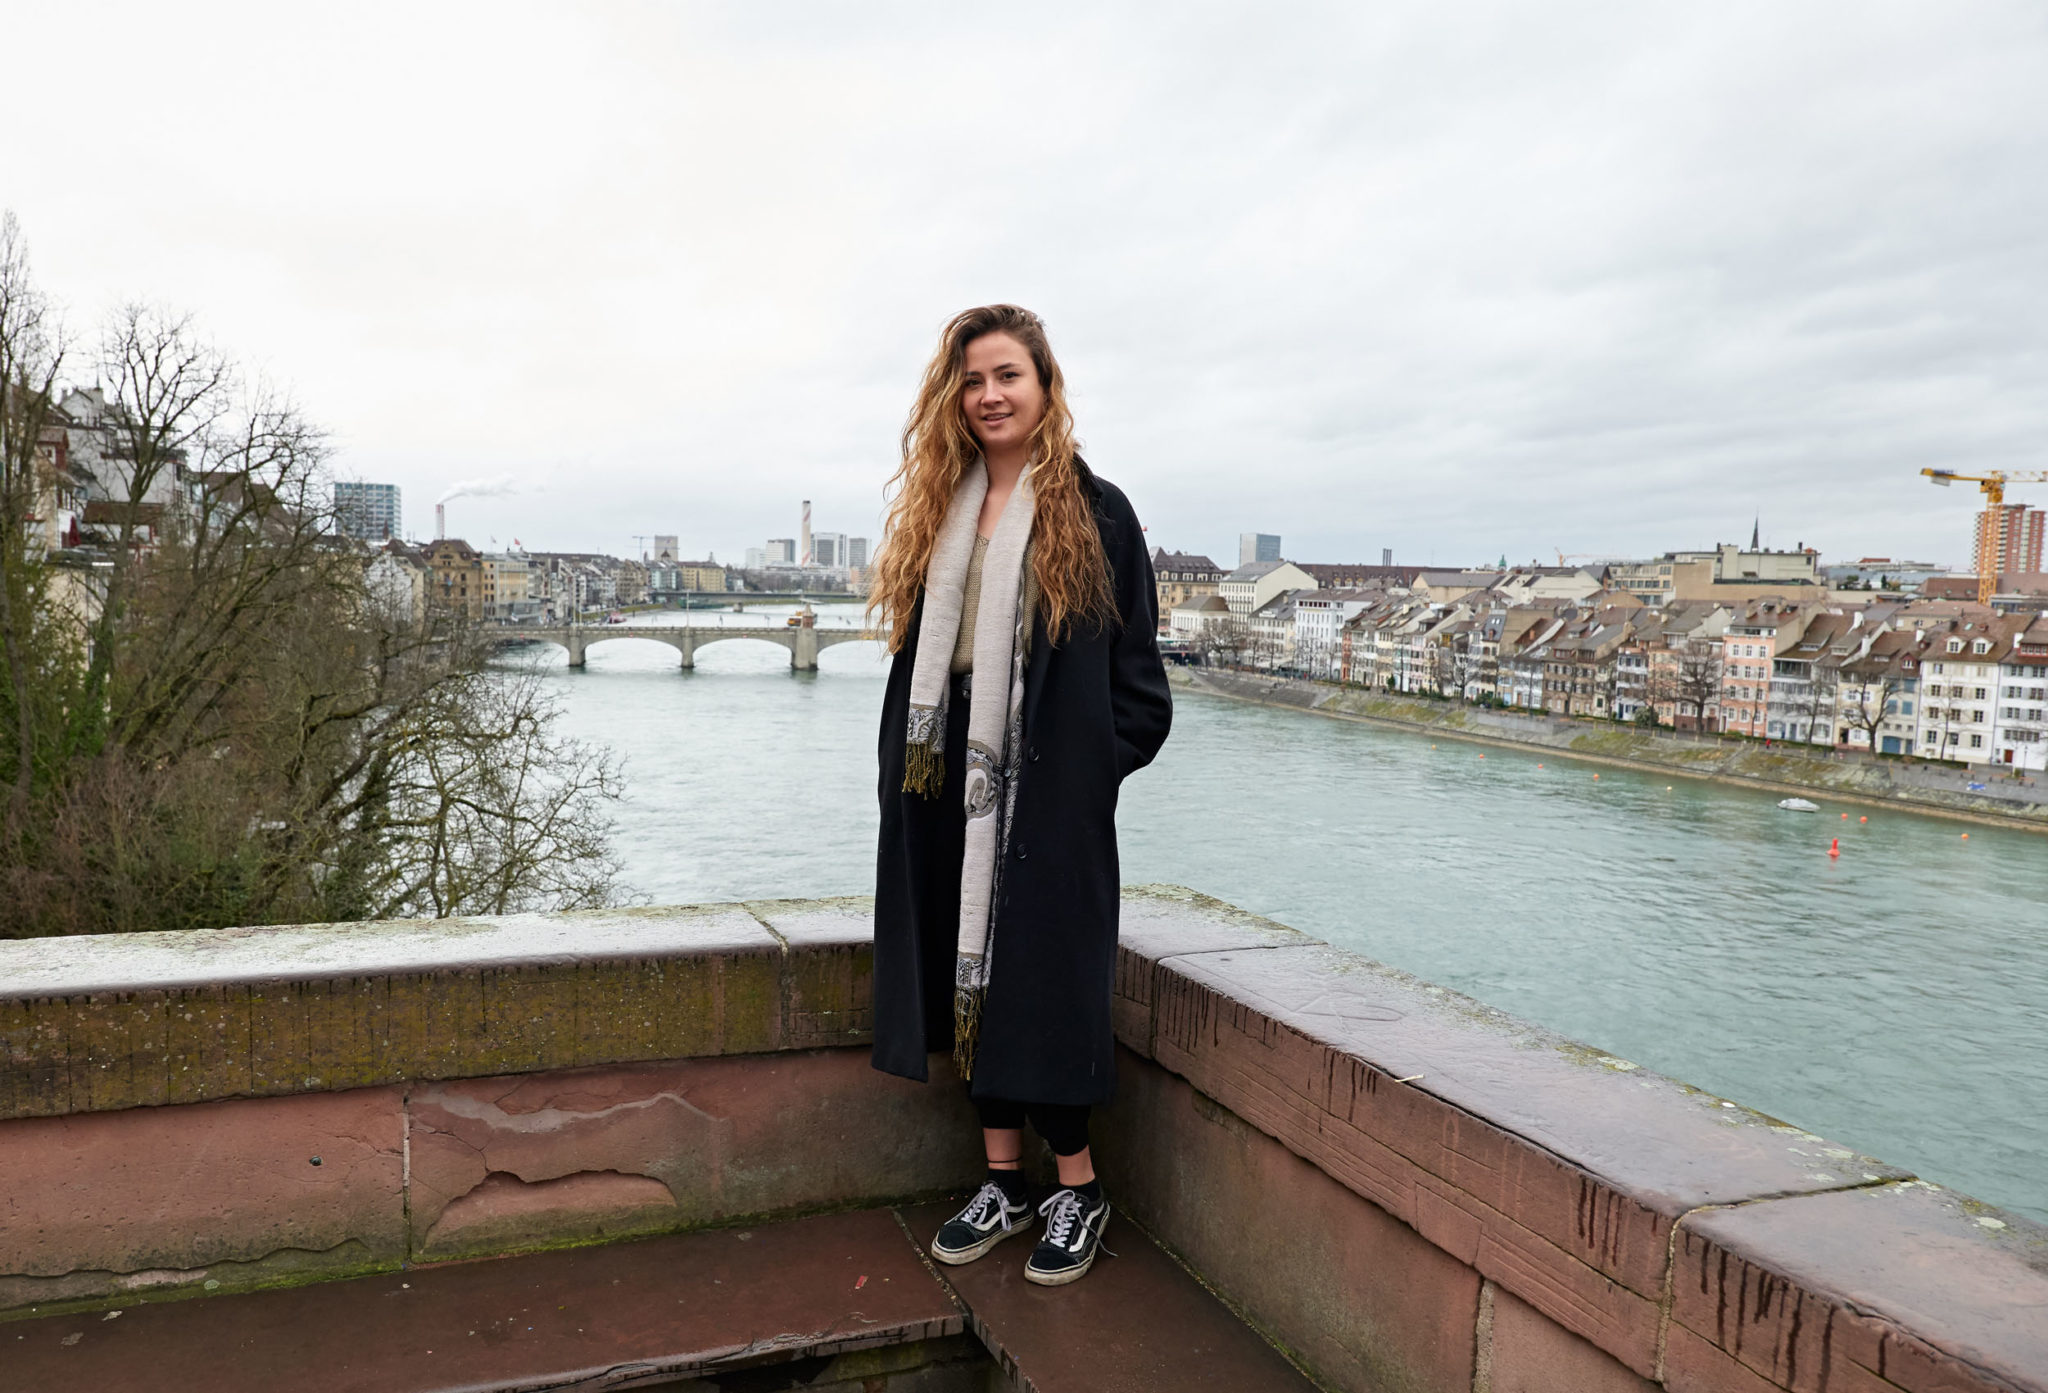 portrait of a vicafe barista in front of the rhein river basel switzerland